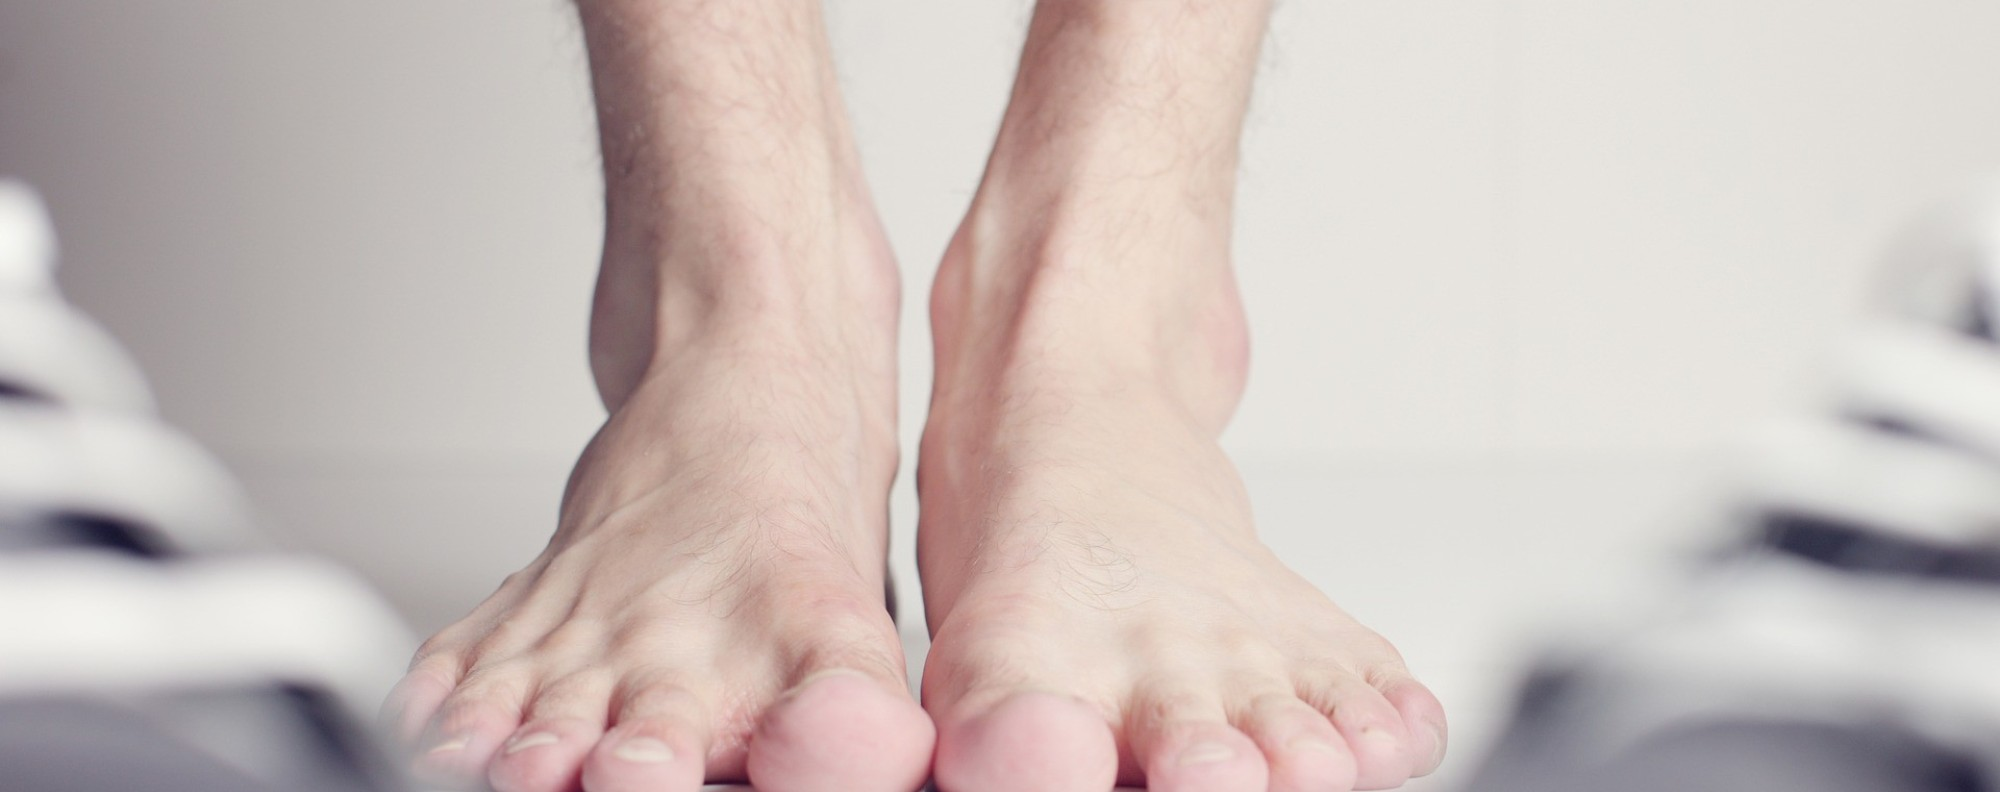 When you get blisters on your feet, it can reduce your run to a limp. Photo: Pixabay